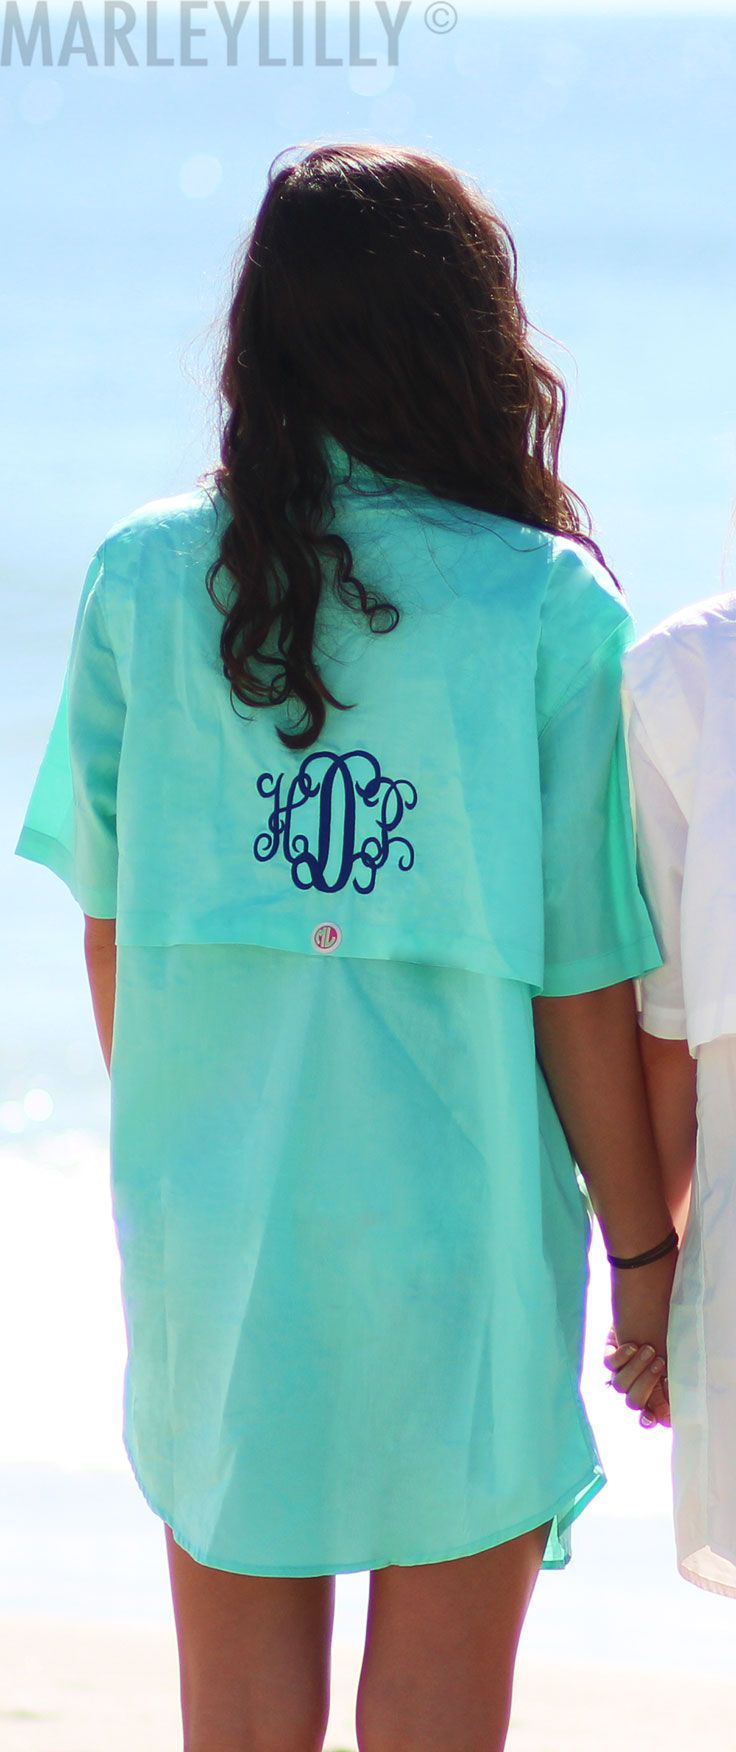 8c6a9391e66b5 This Monogrammed Fishing Shirt makes the perfect summer cover up for the  beach or pool! Only at Marleylilly.com!